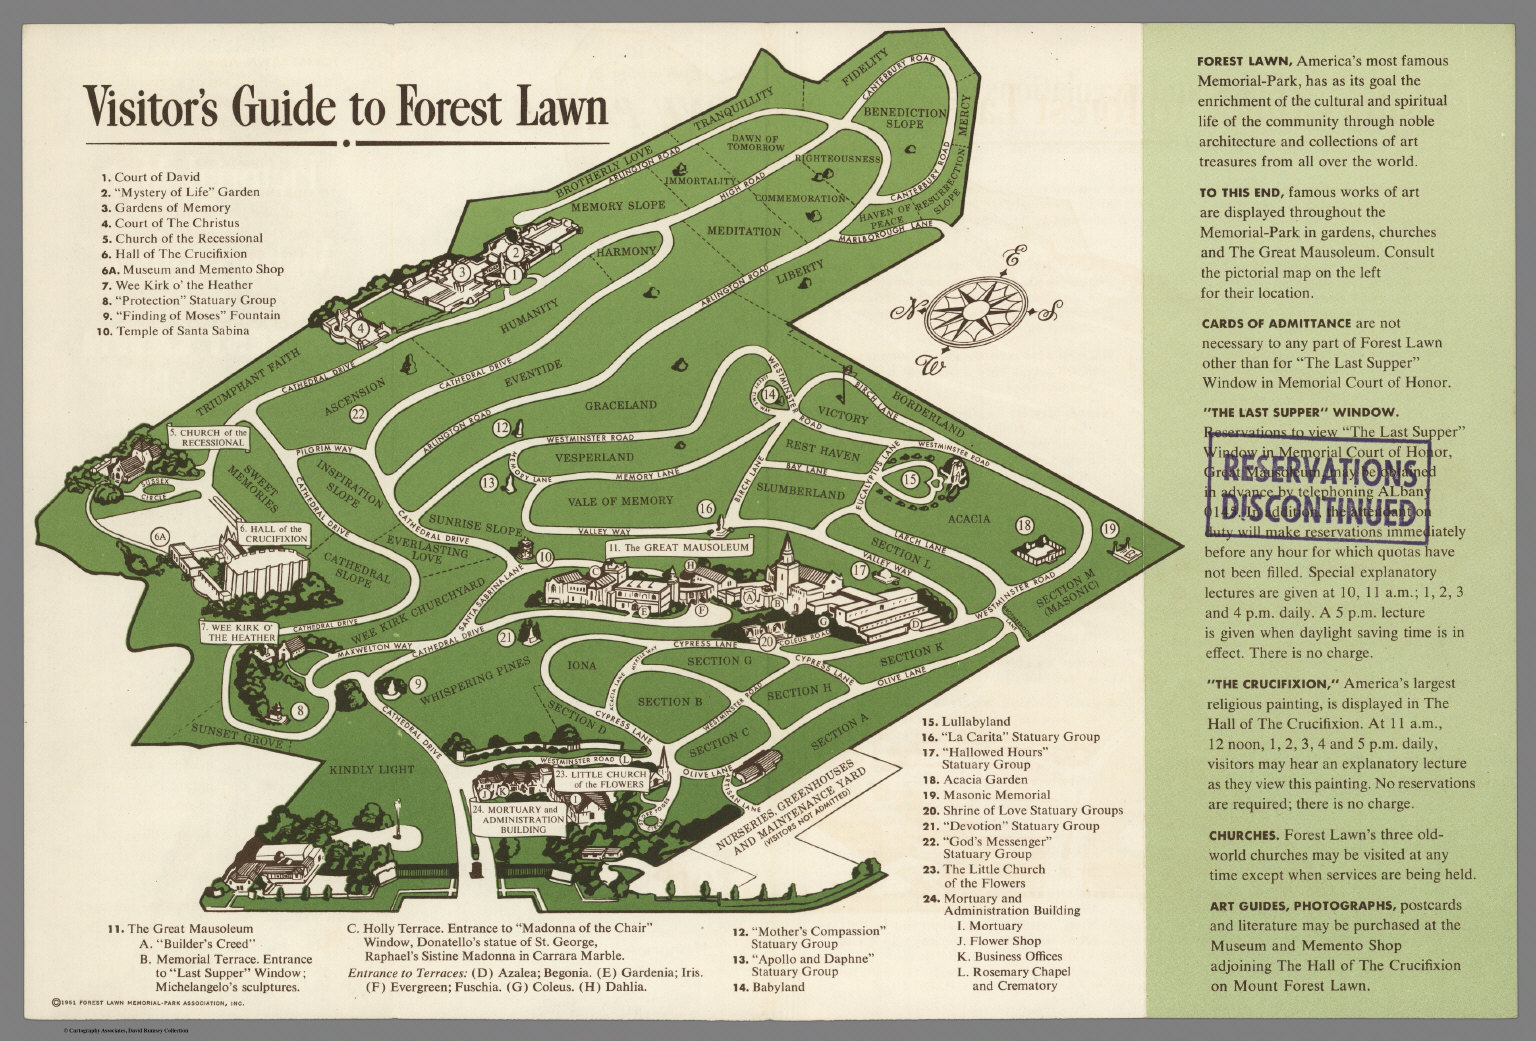 Pictorial Map and Visitors Guide to Forest Lawn MemorialPark